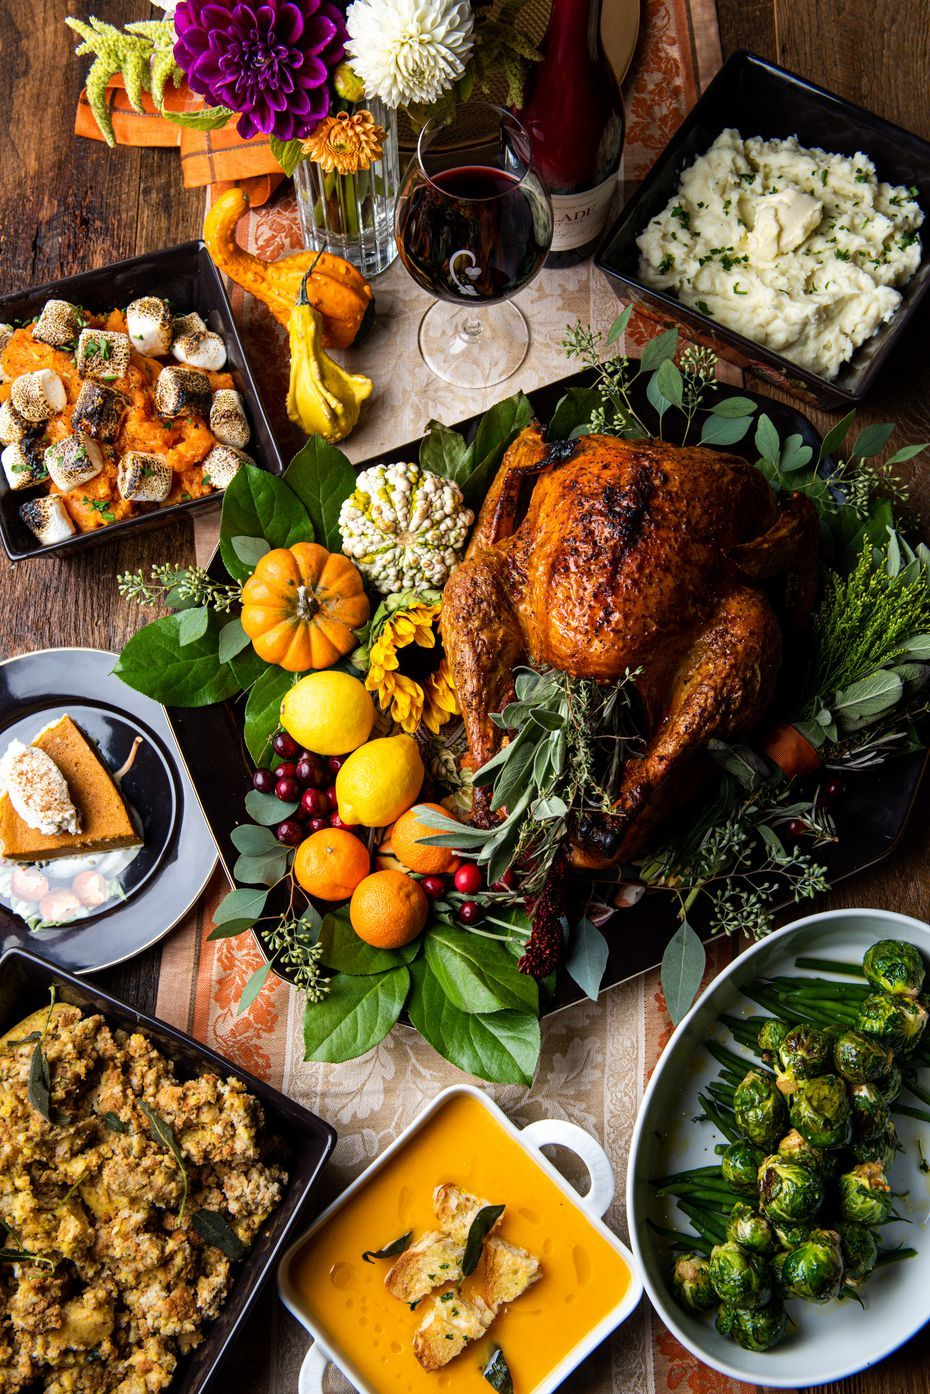 125 Restaurants And Bars Open On Thanksgiving Day In North Texas Thanksgiving Dinner Restaurant Dinner Traditional Thanksgiving Recipes